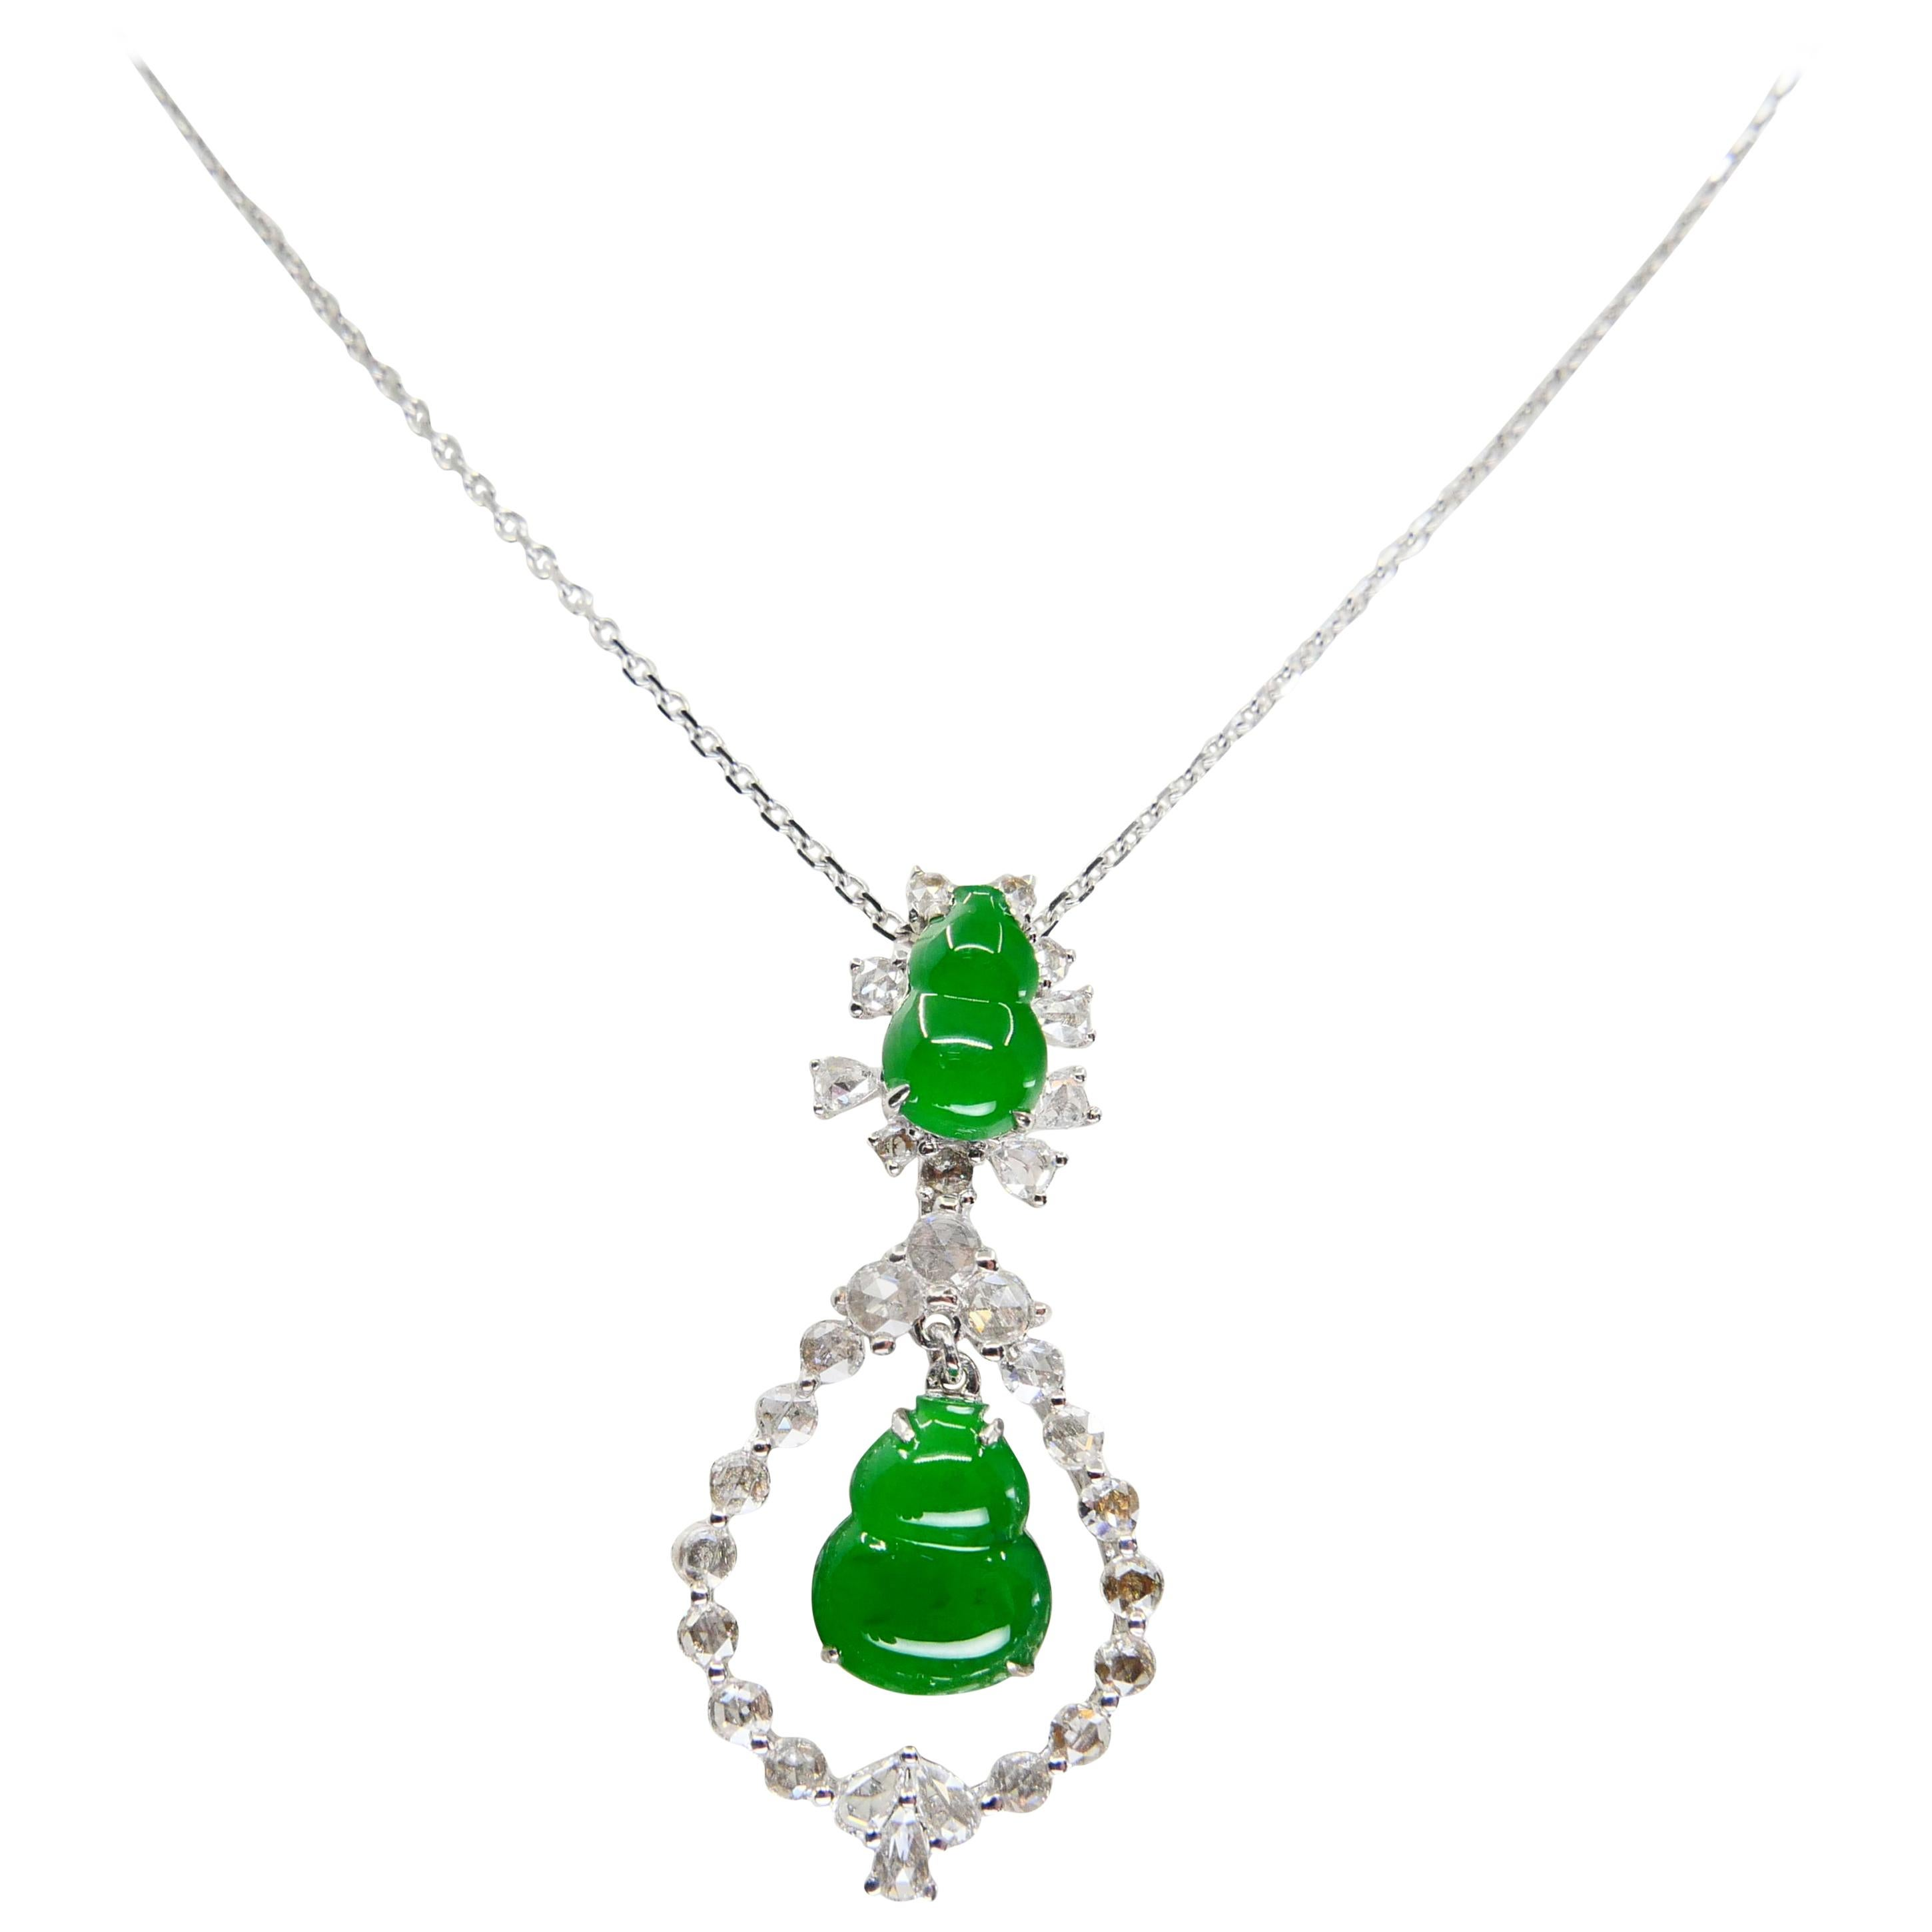 Important Certified Imperial Jade Gourd Diamond Pendant Necklace, Imperial Green